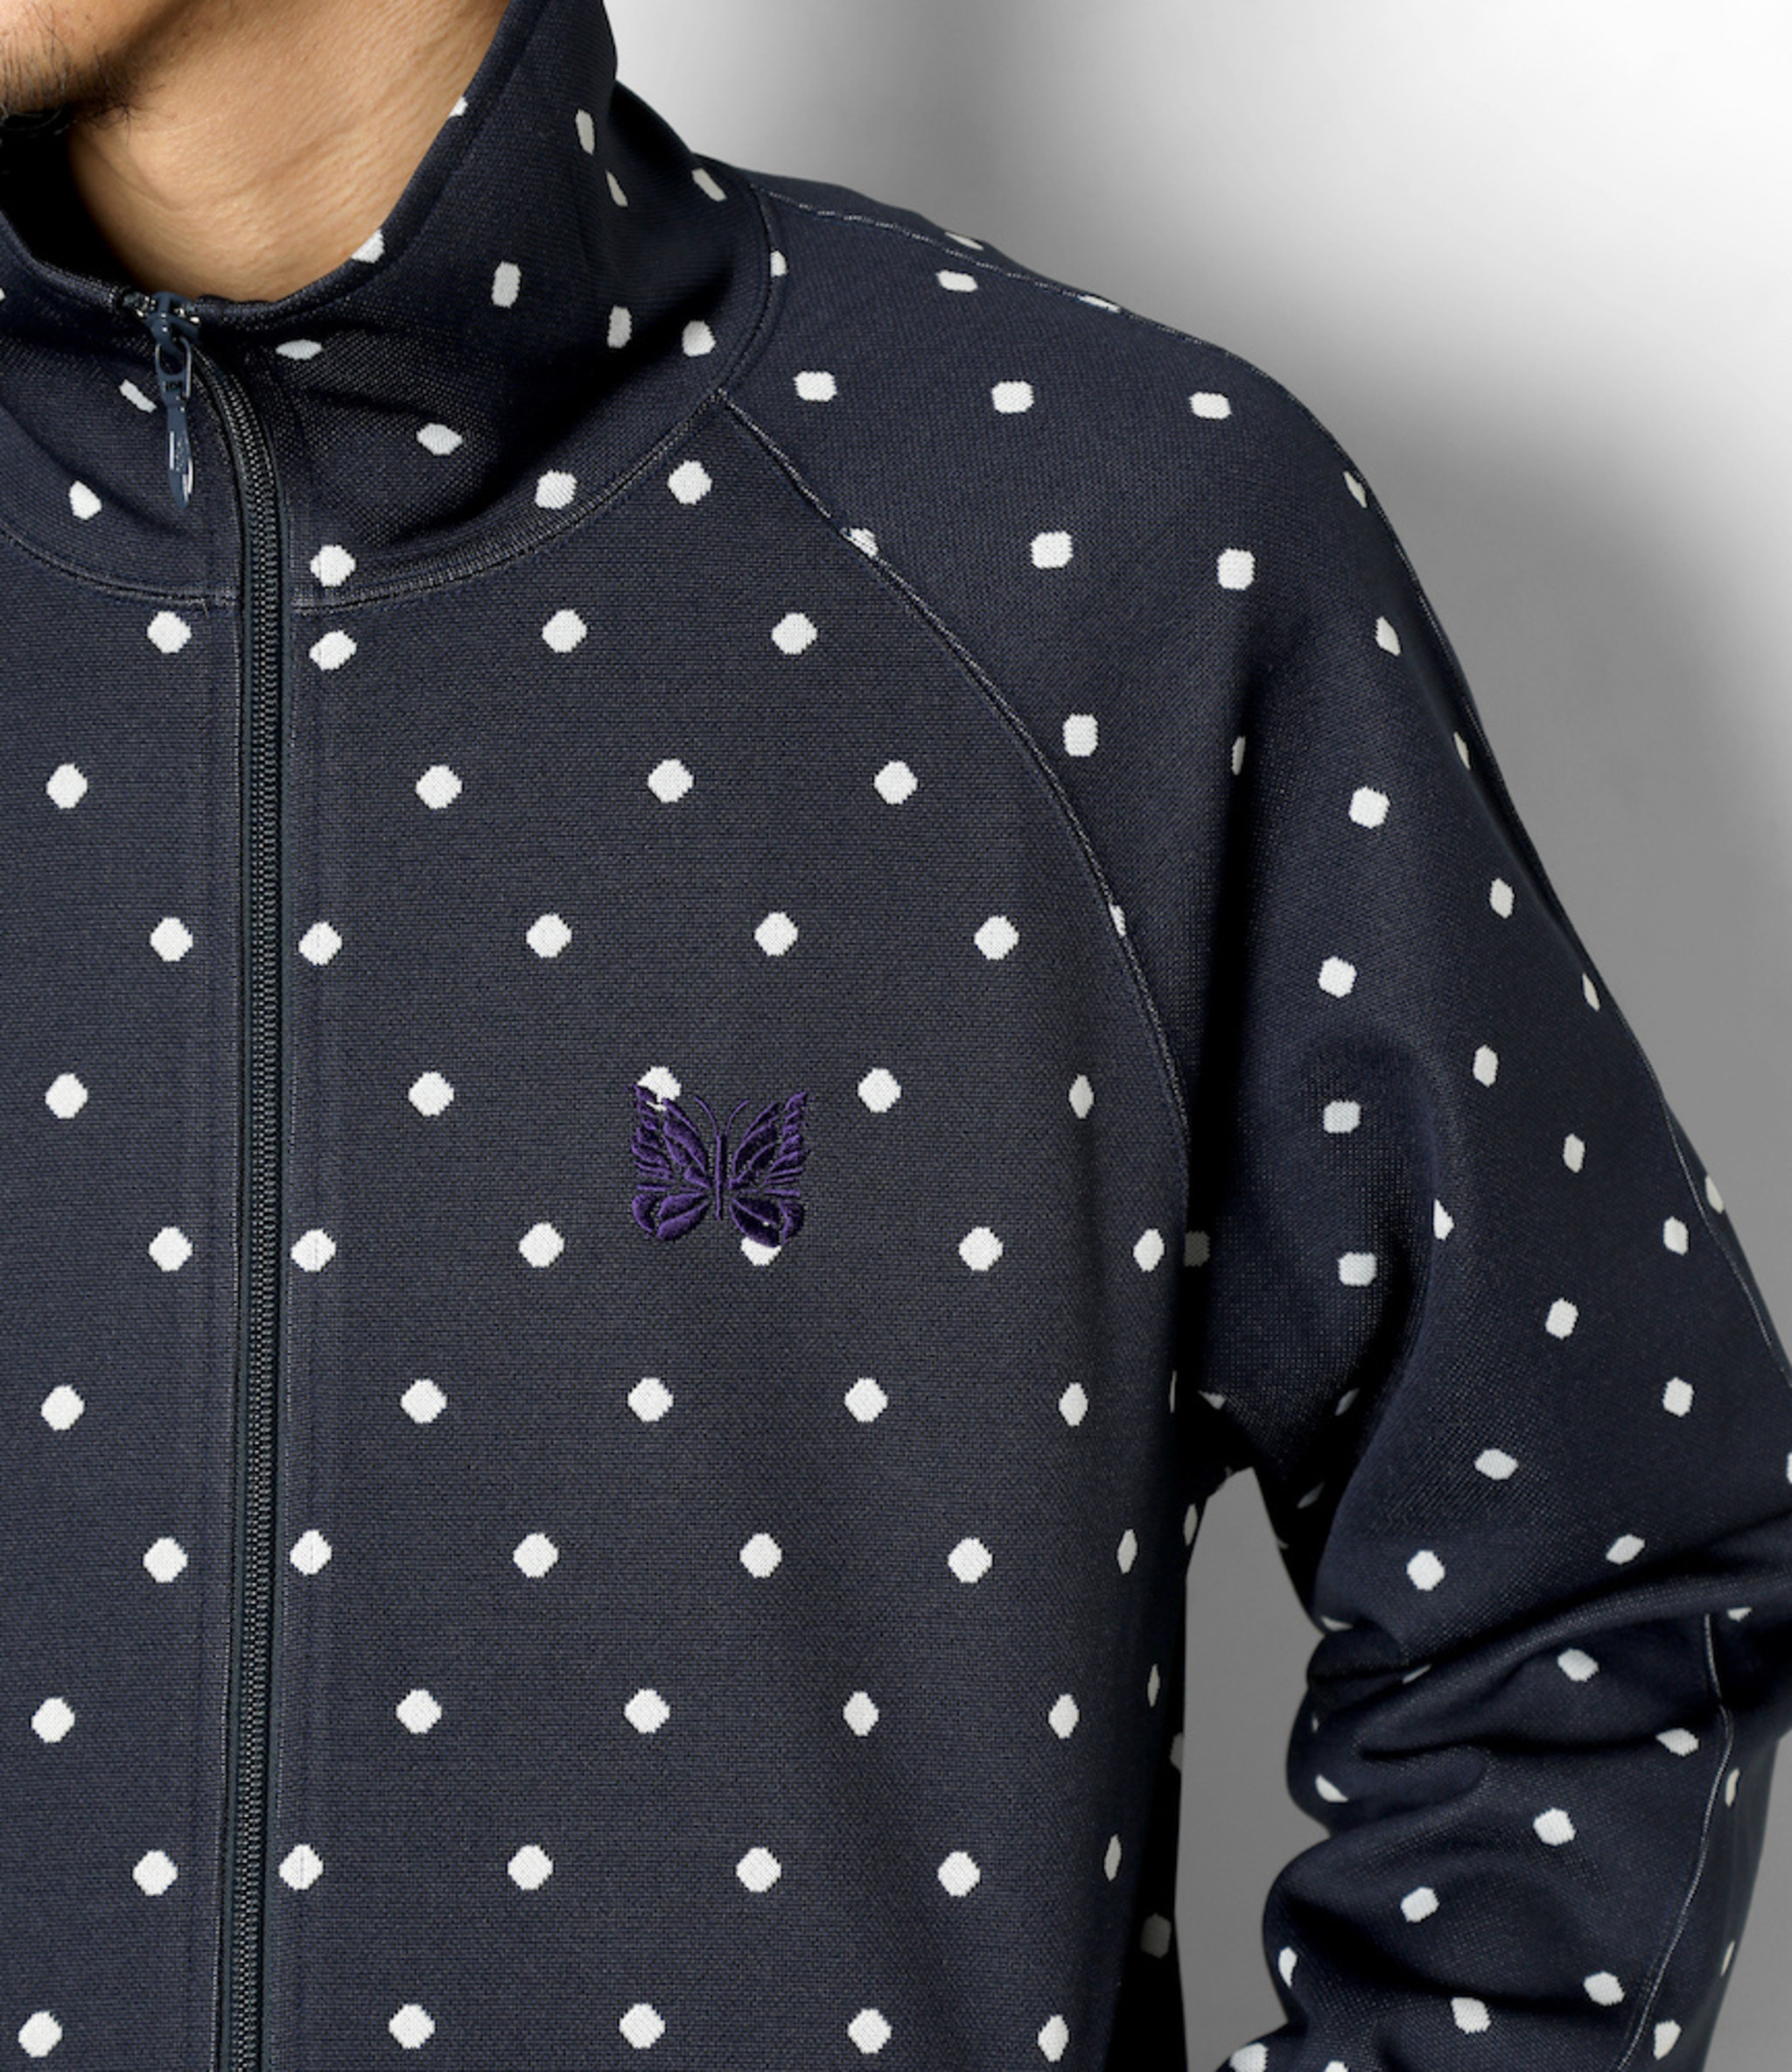 Needles Track Jacket - Poly Jacquard - Polka Dot